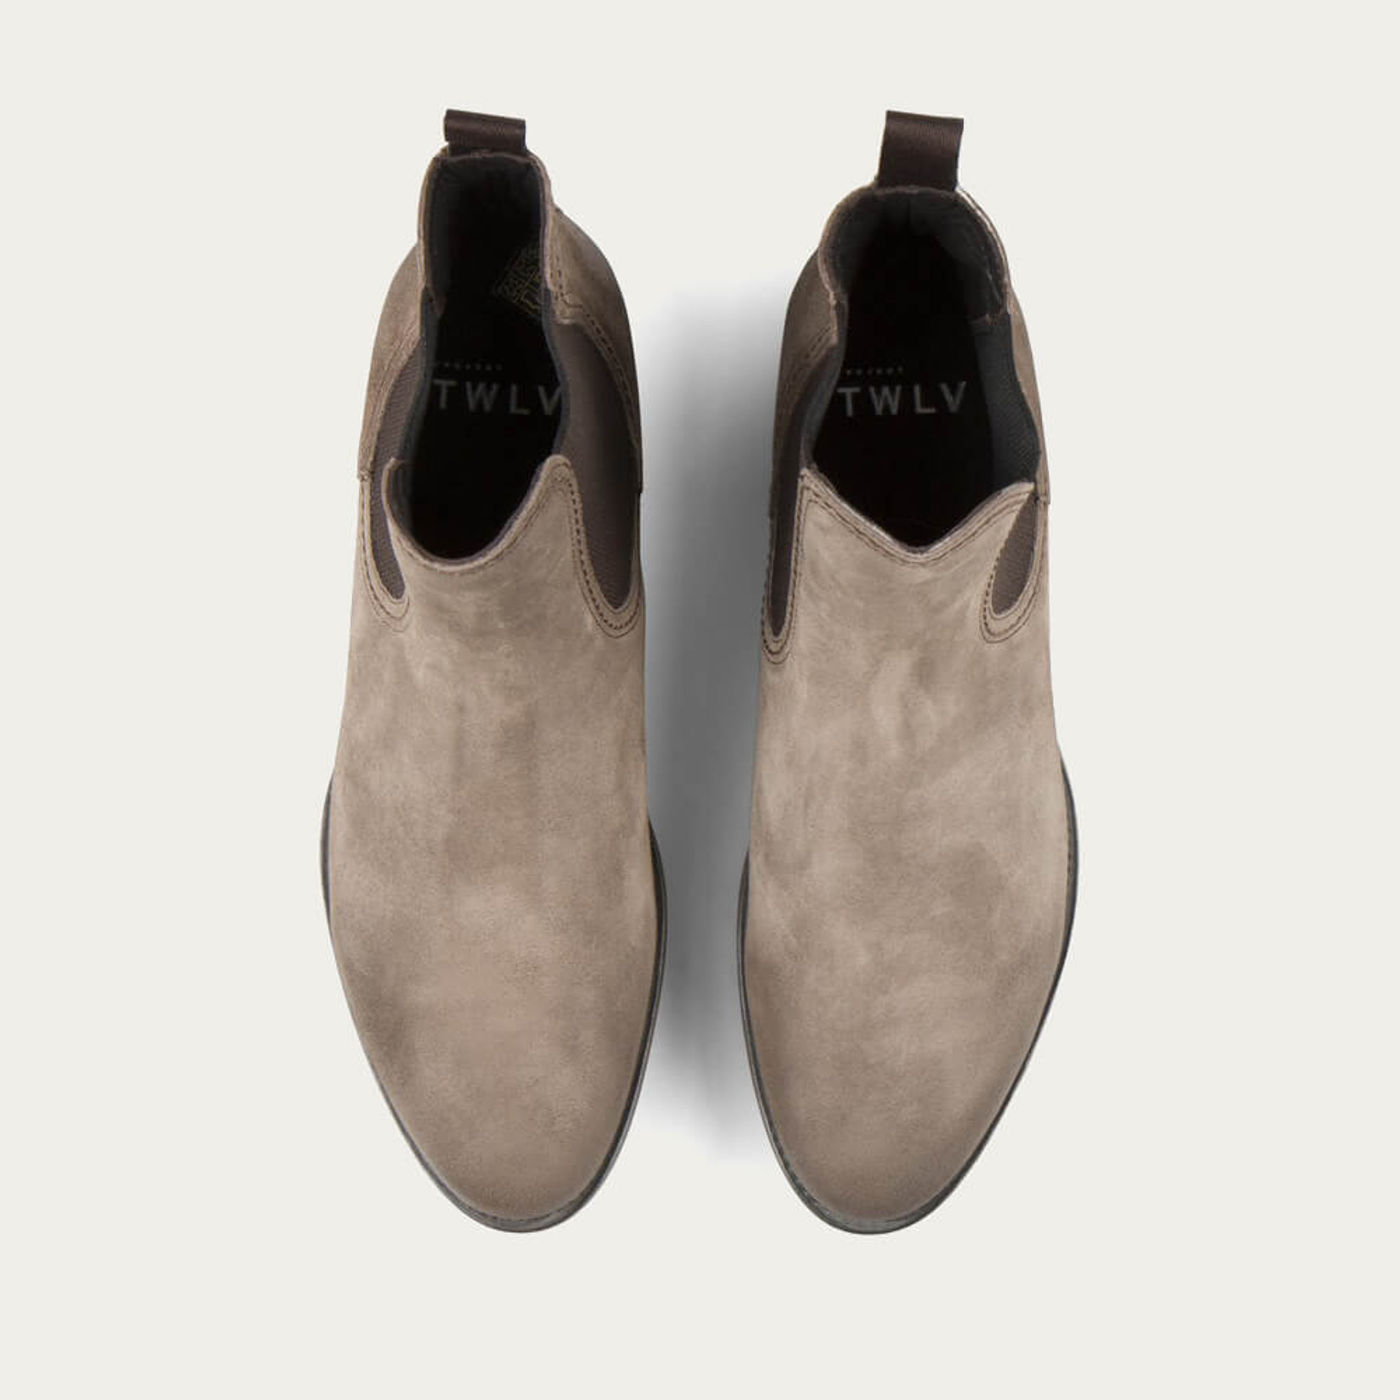 Sand Hanoi Suede Leather Chelsea Boots   Bombinate